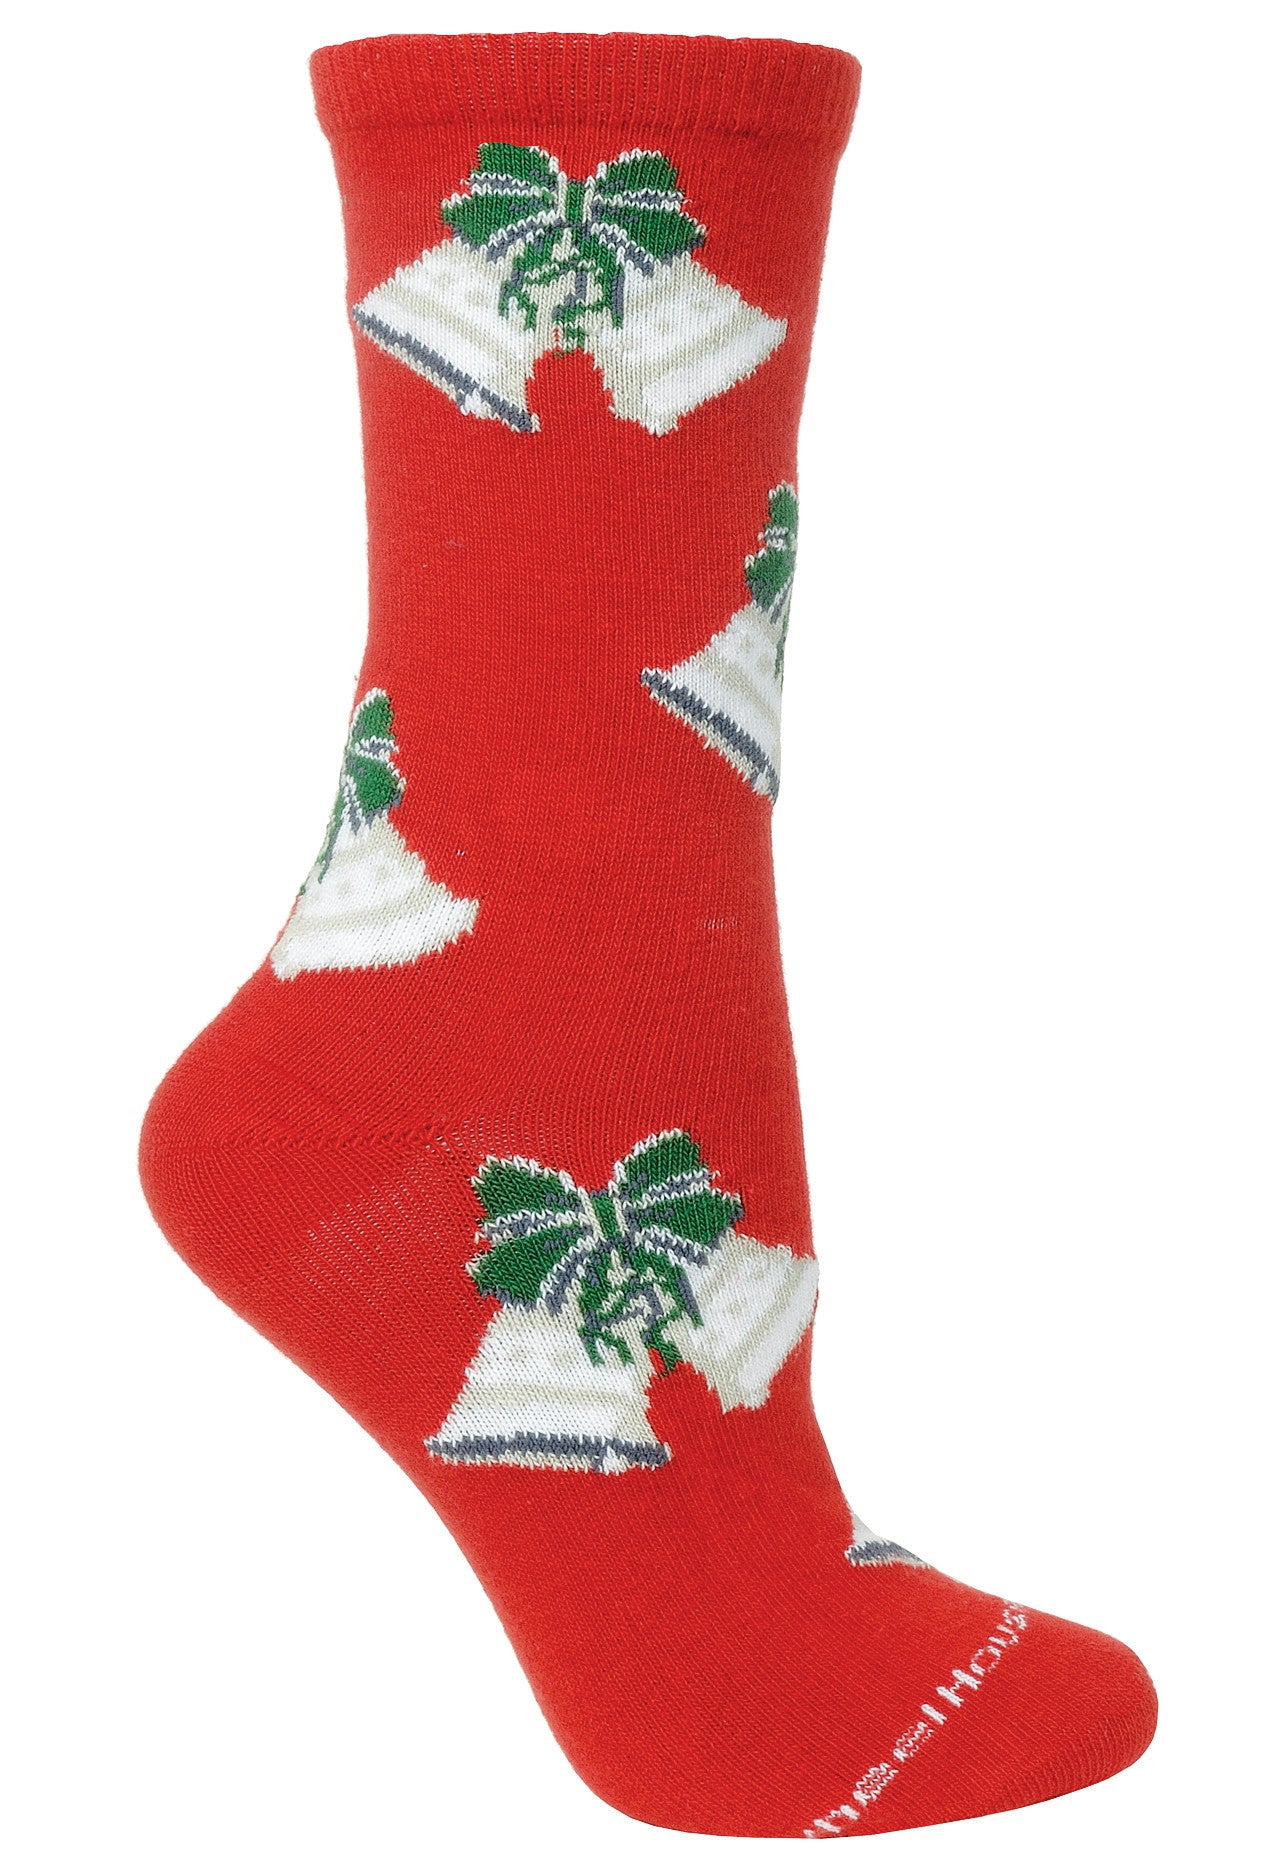 Silver Bells Crew Socks on Red